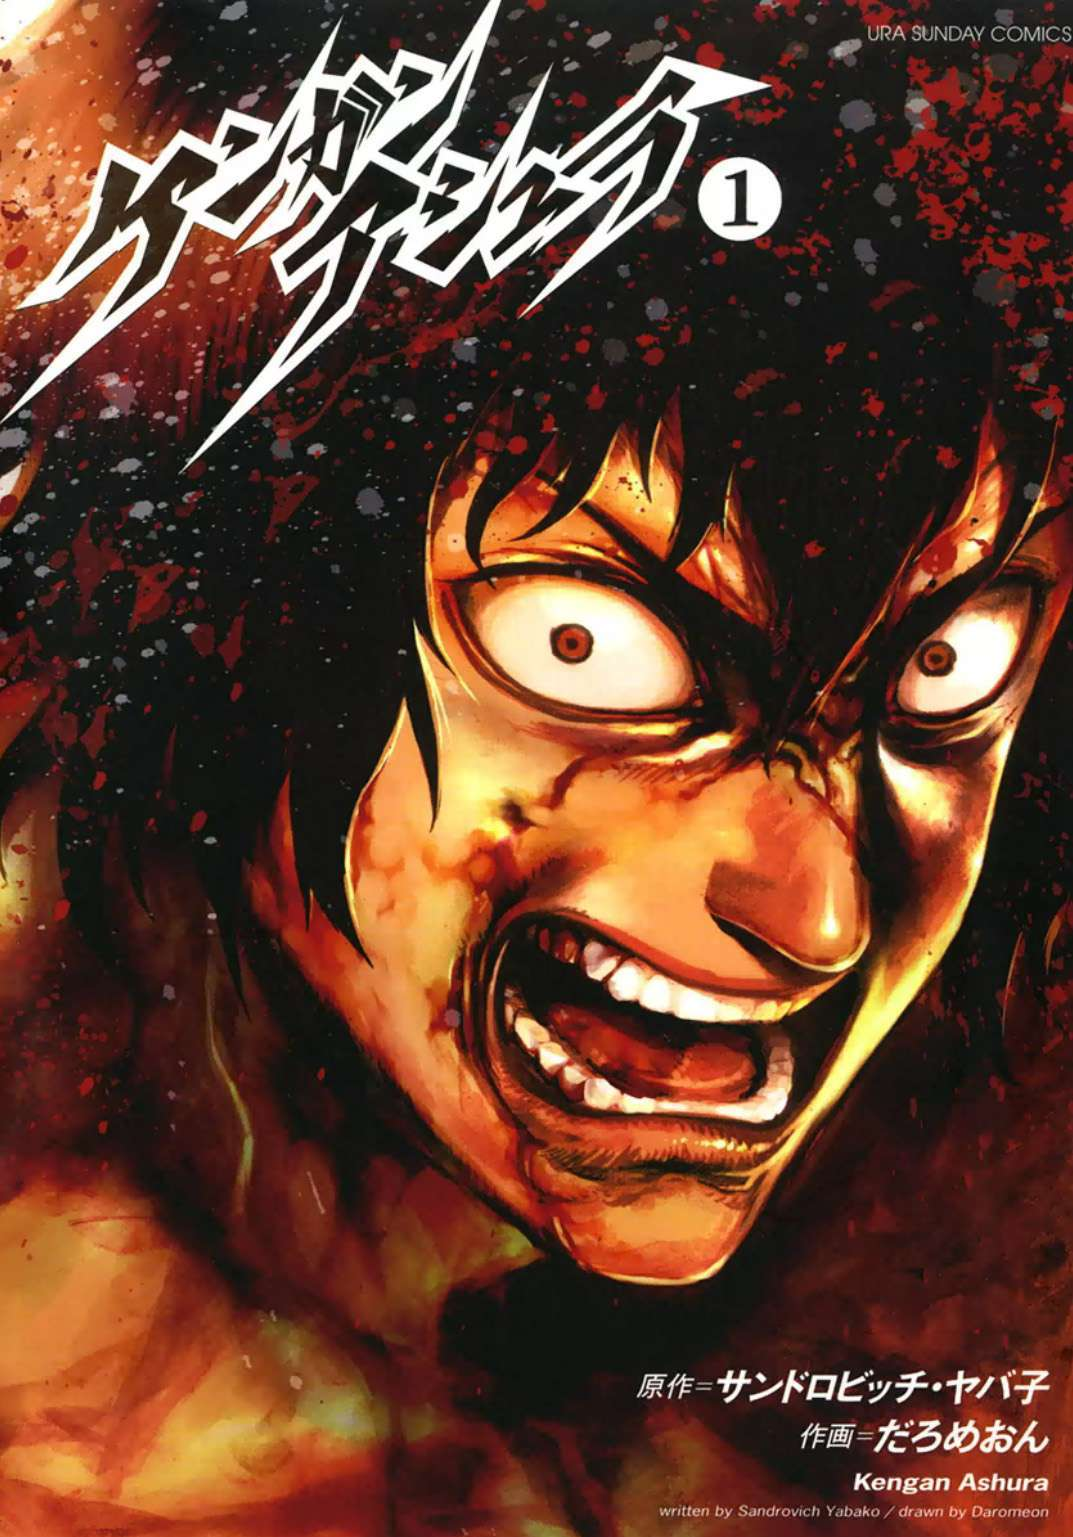 kengan ashura season 3 release date cast and characters and more 600f06b51c042 Kengan Ashura Season 3 Release Date, Cast and Characters and More!